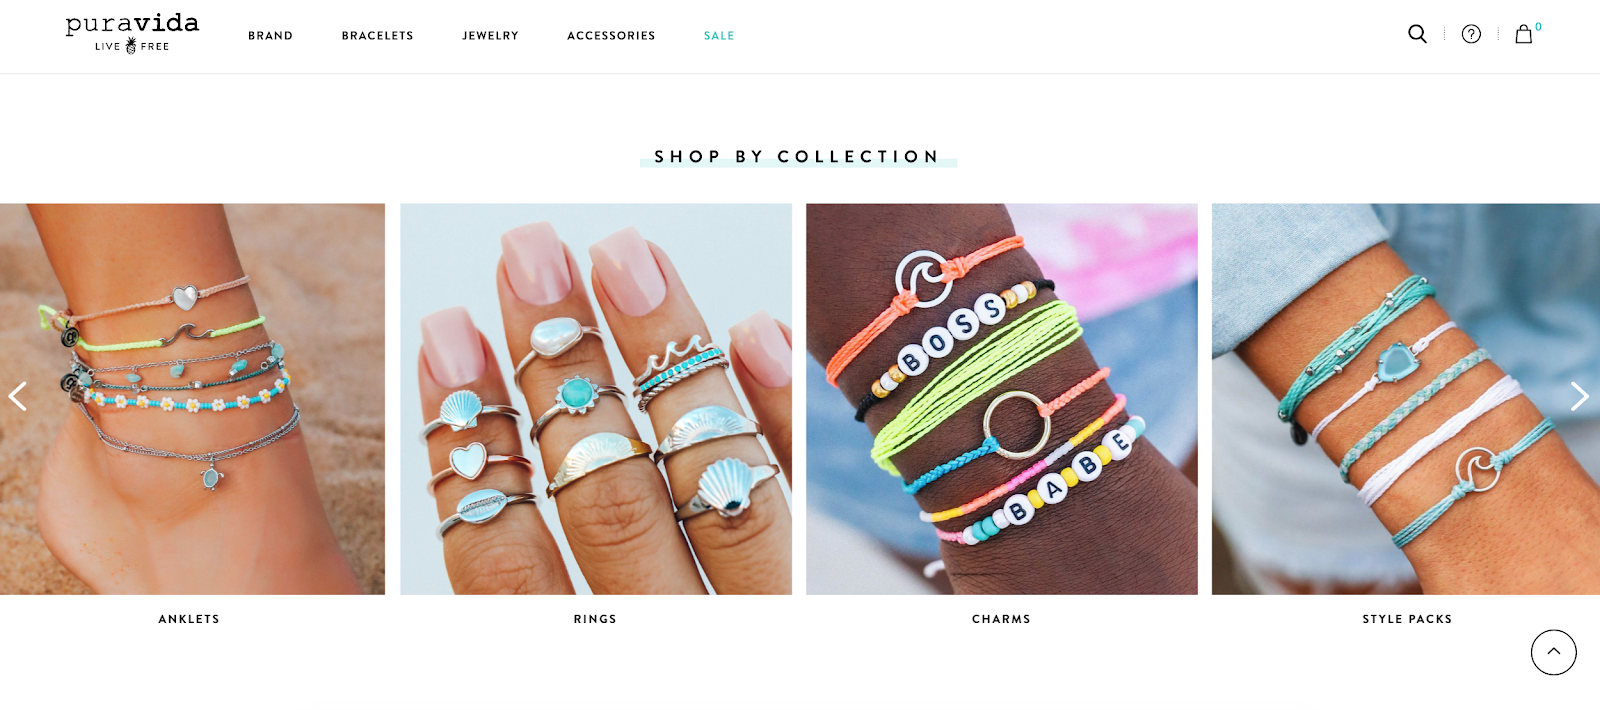 Merchandising example of Collections by Pura Vida